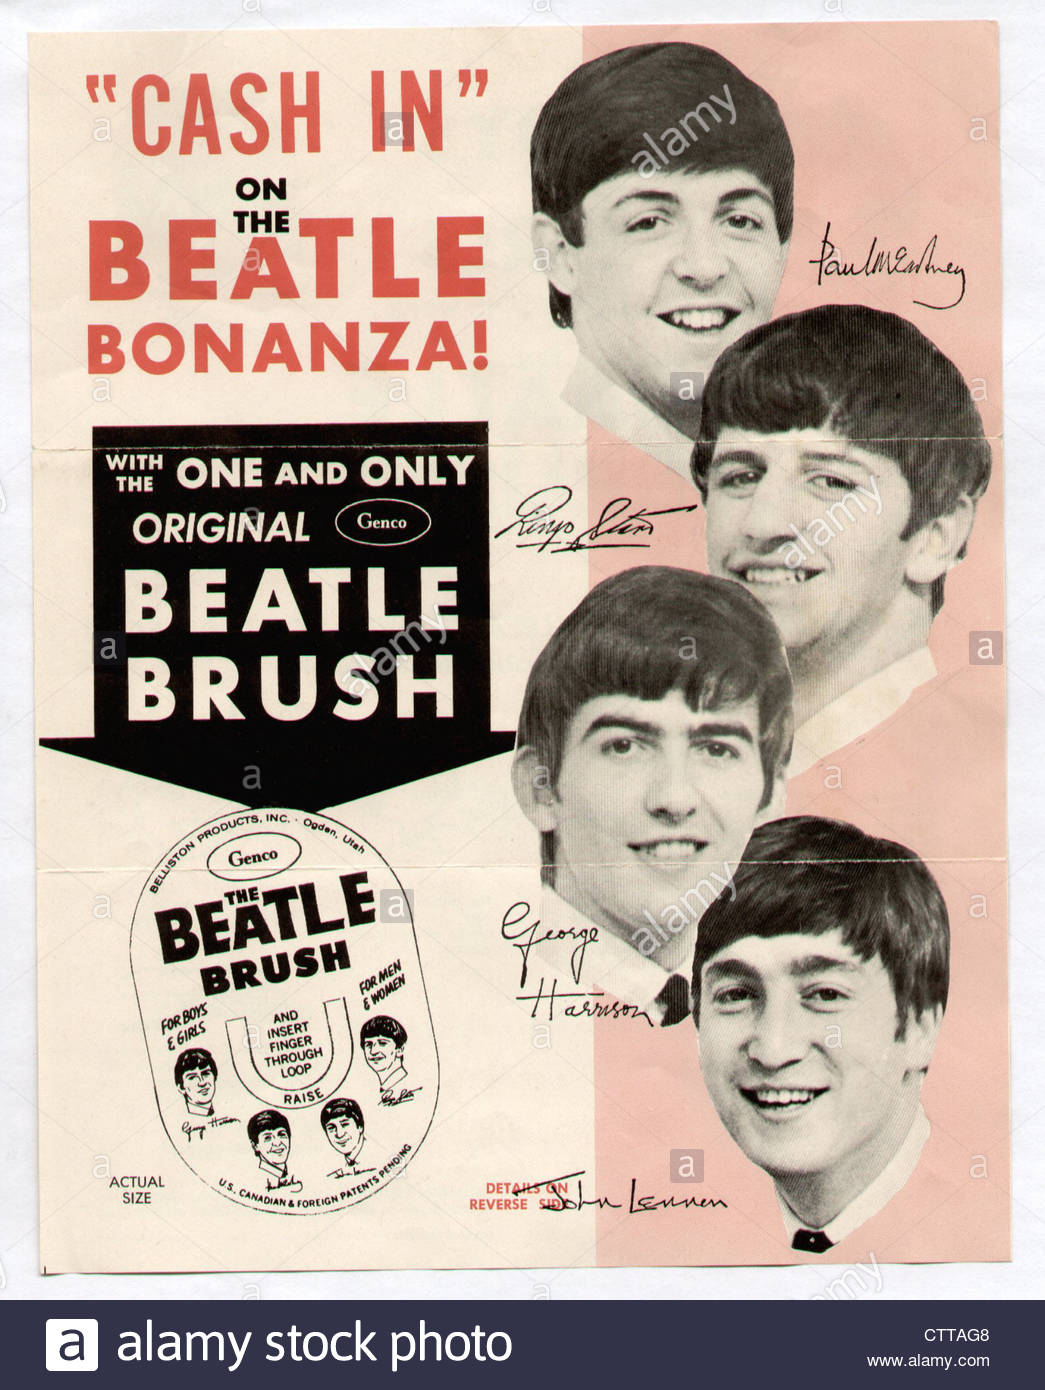 000920 - The Beatles 1964 Genco Brush Flyer - Stock Image